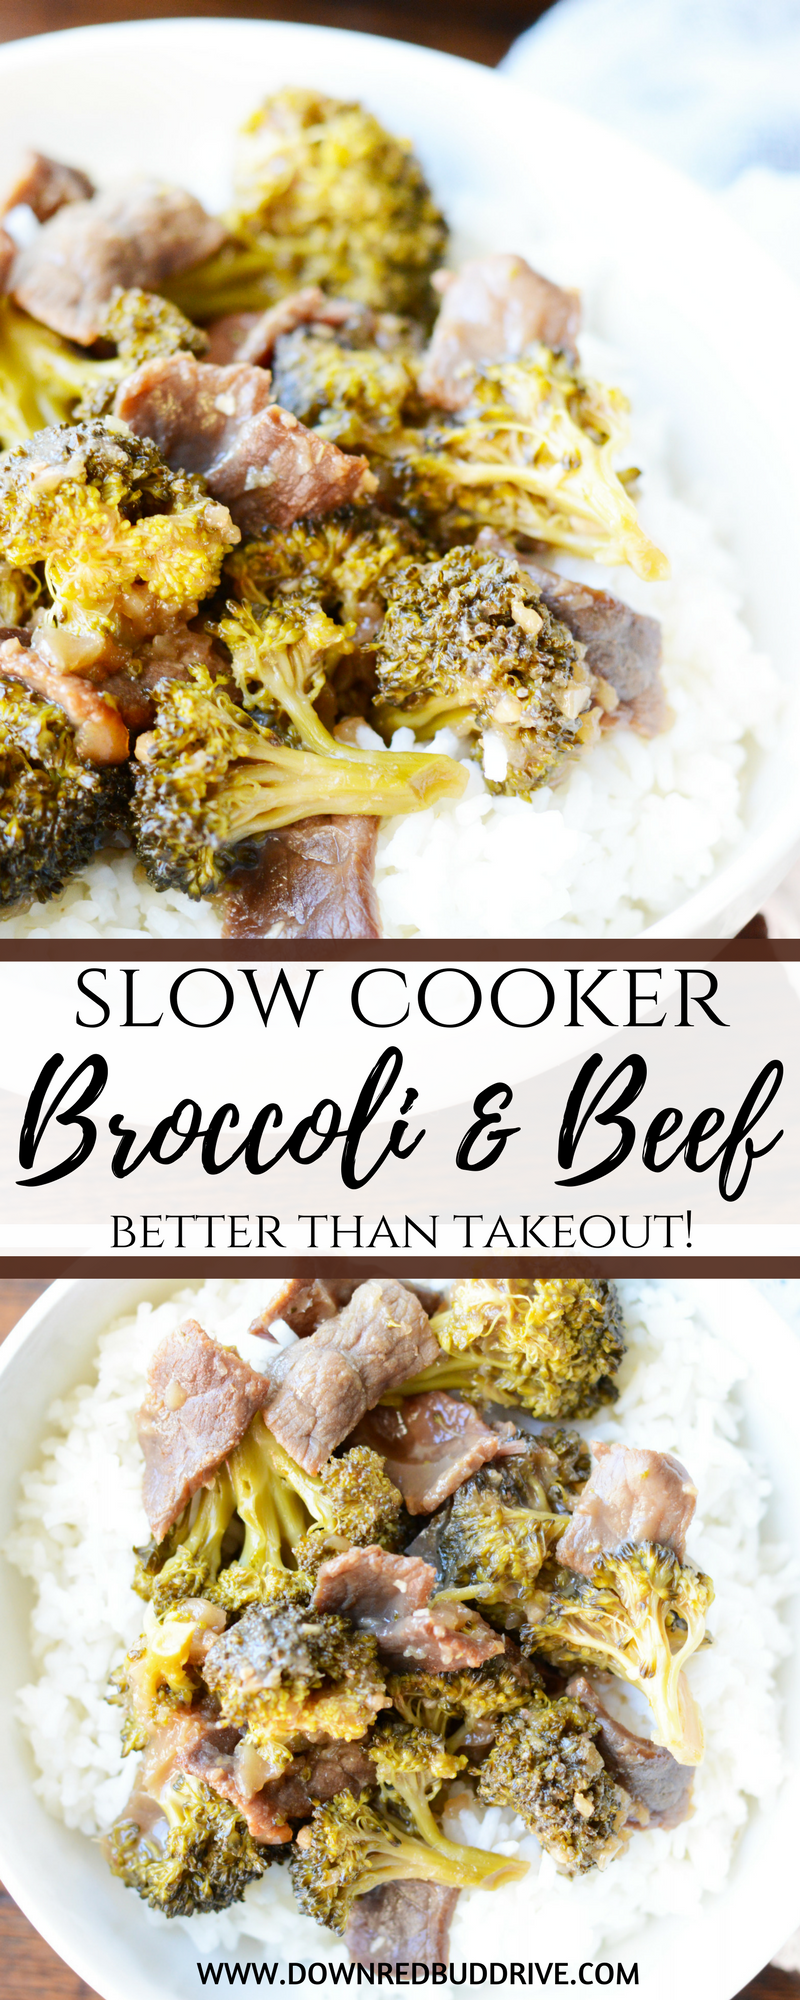 Broccoli beef broccoli and beef chinese food recipe stir fry broccoli beef broccoli and beef chinese food recipe stir fry recipe crockpot chinese broccoli and beef recipe slow cooker chinese slow forumfinder Choice Image